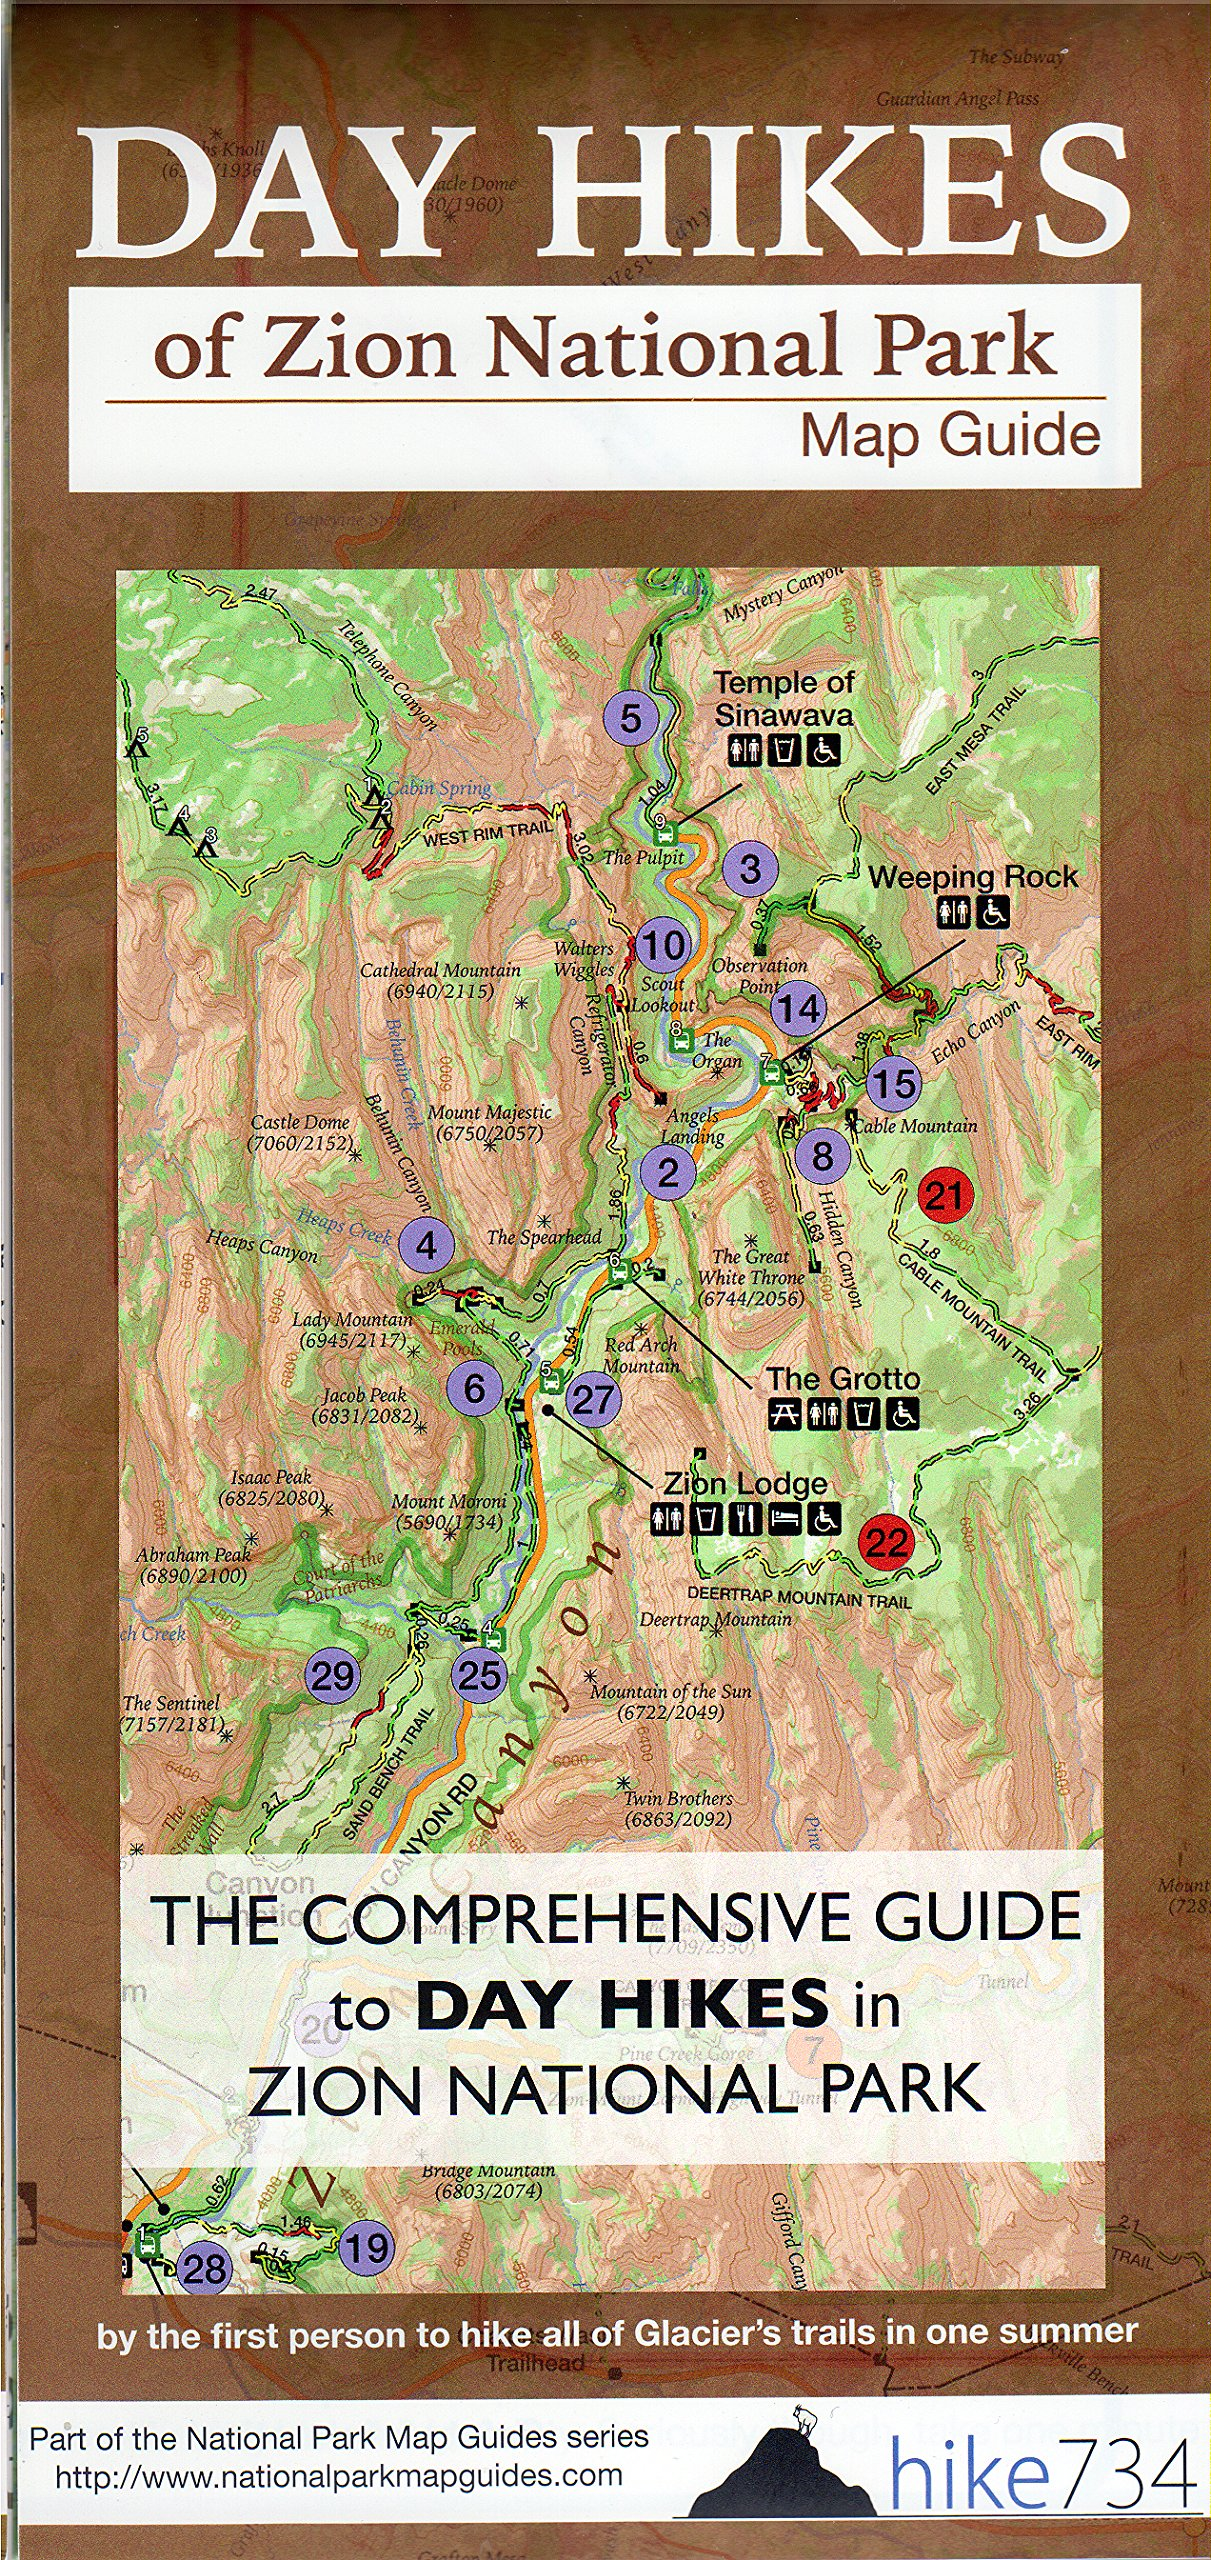 Day Hikes of Zion National Park Map-Guide: Jake mante ... on